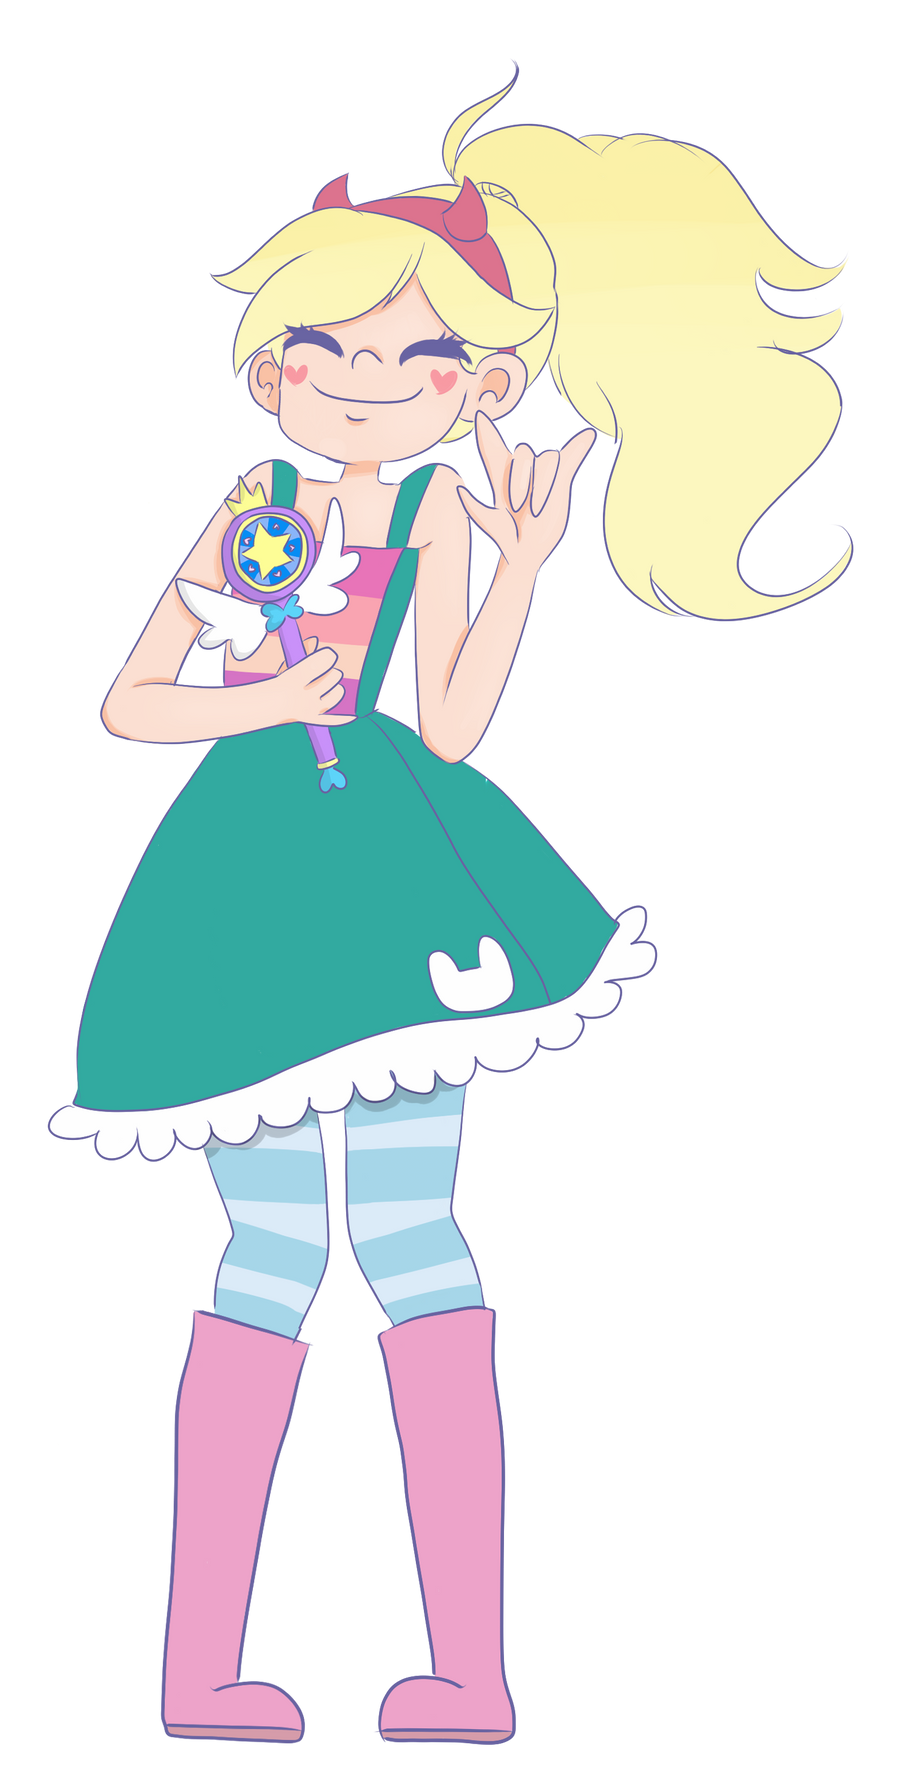 Star Butterfly by RobbieCave on DeviantArt